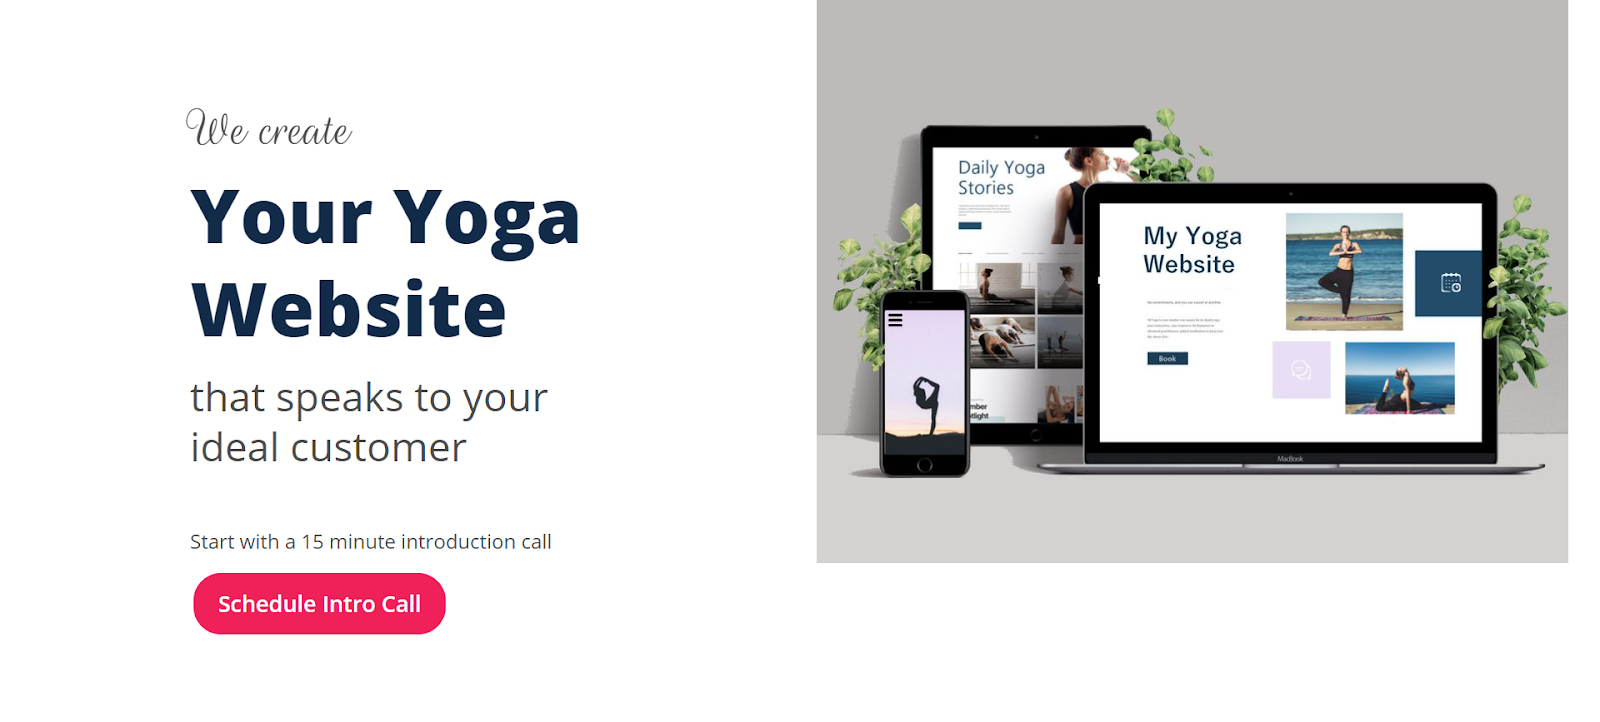 your yoga website landing page with no other links